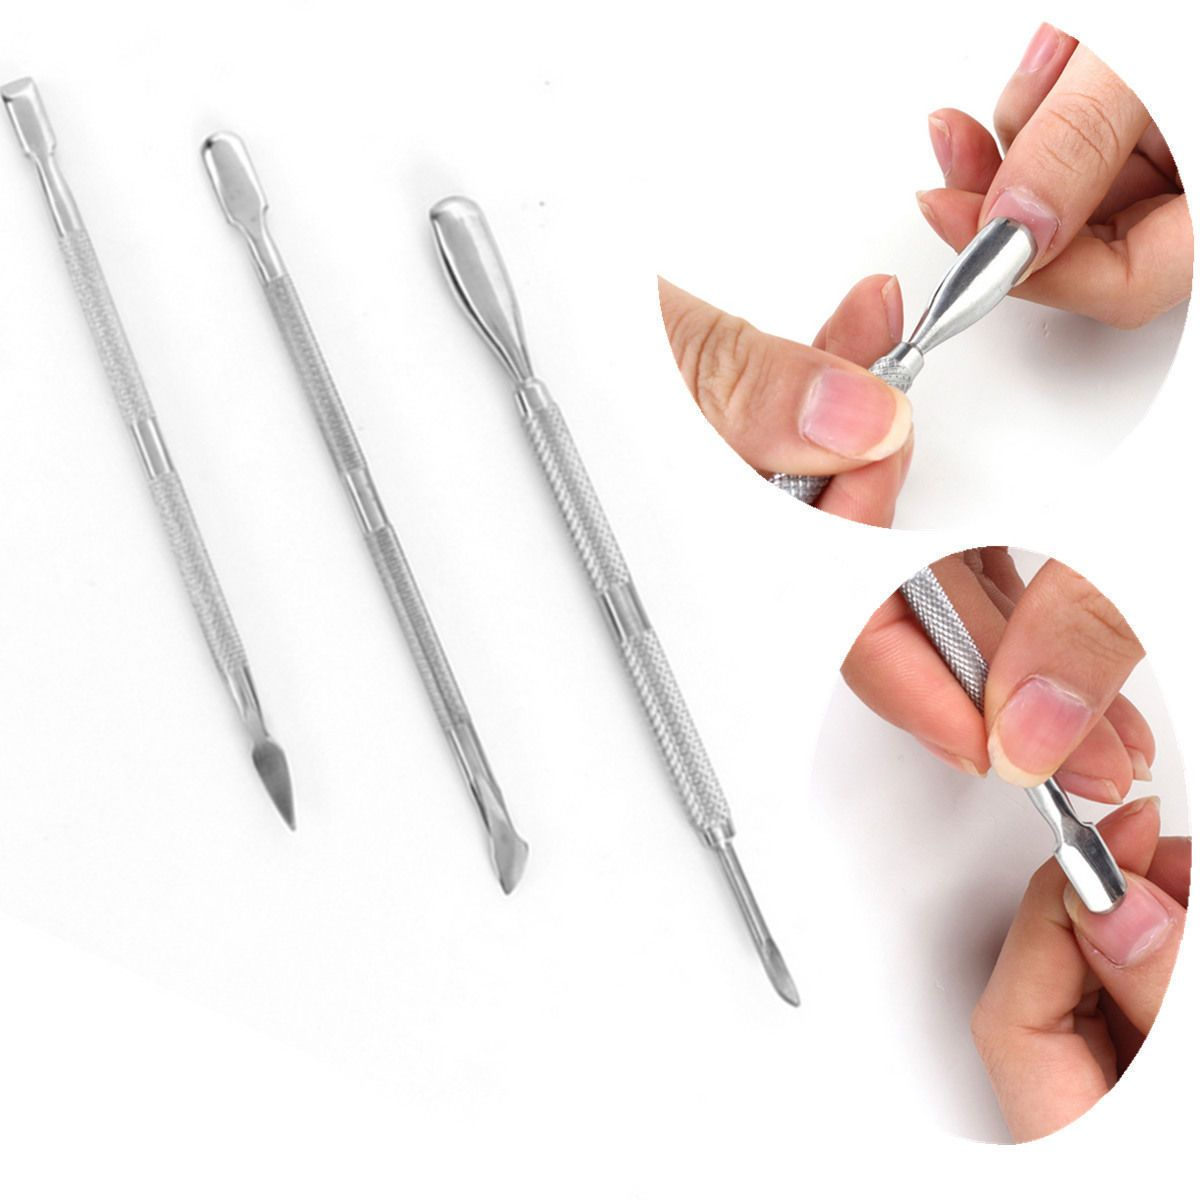 Awesome 3Pcs Nail Art Stainless Steel Cuticle Spoon Remover Pusher Manicure Pedicure Set Check More At